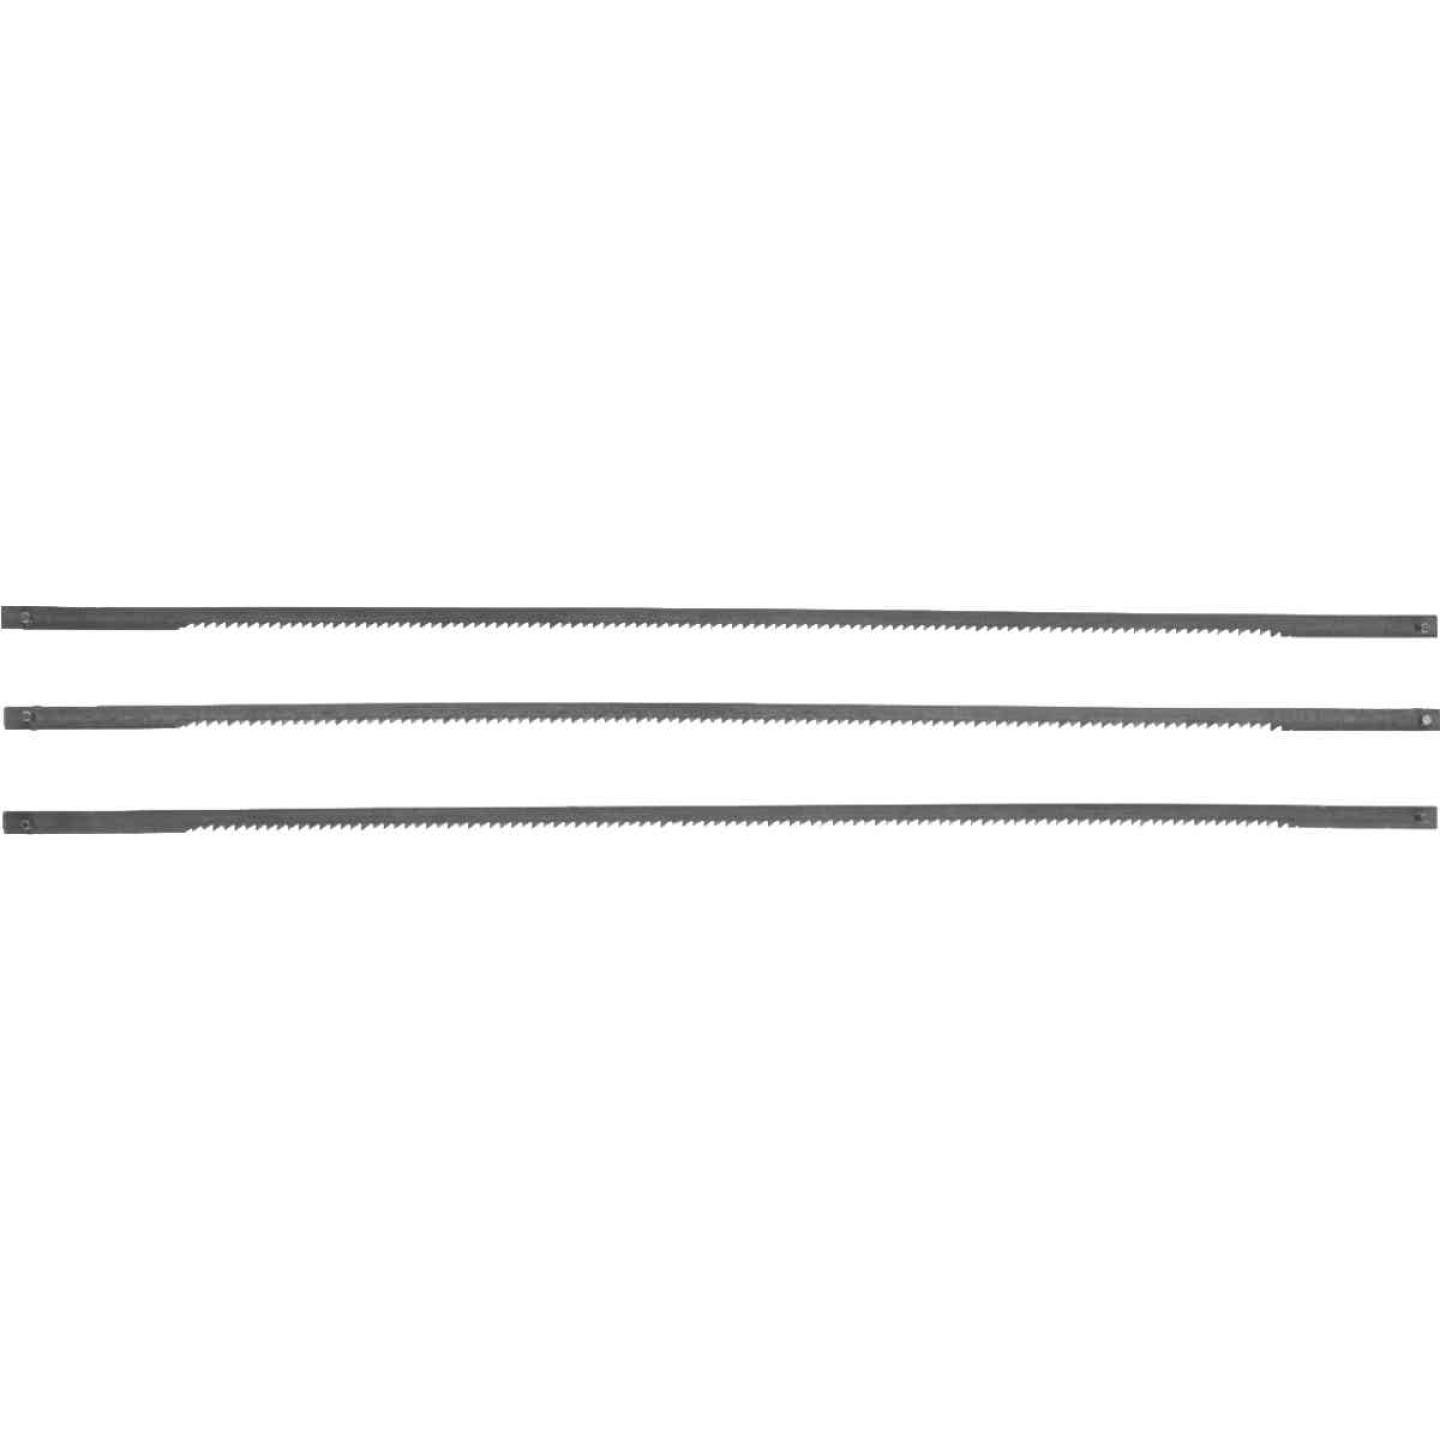 Irwin 6-1/2 In. 21 TPI Coping Saw Blade (3-Pack) Image 1